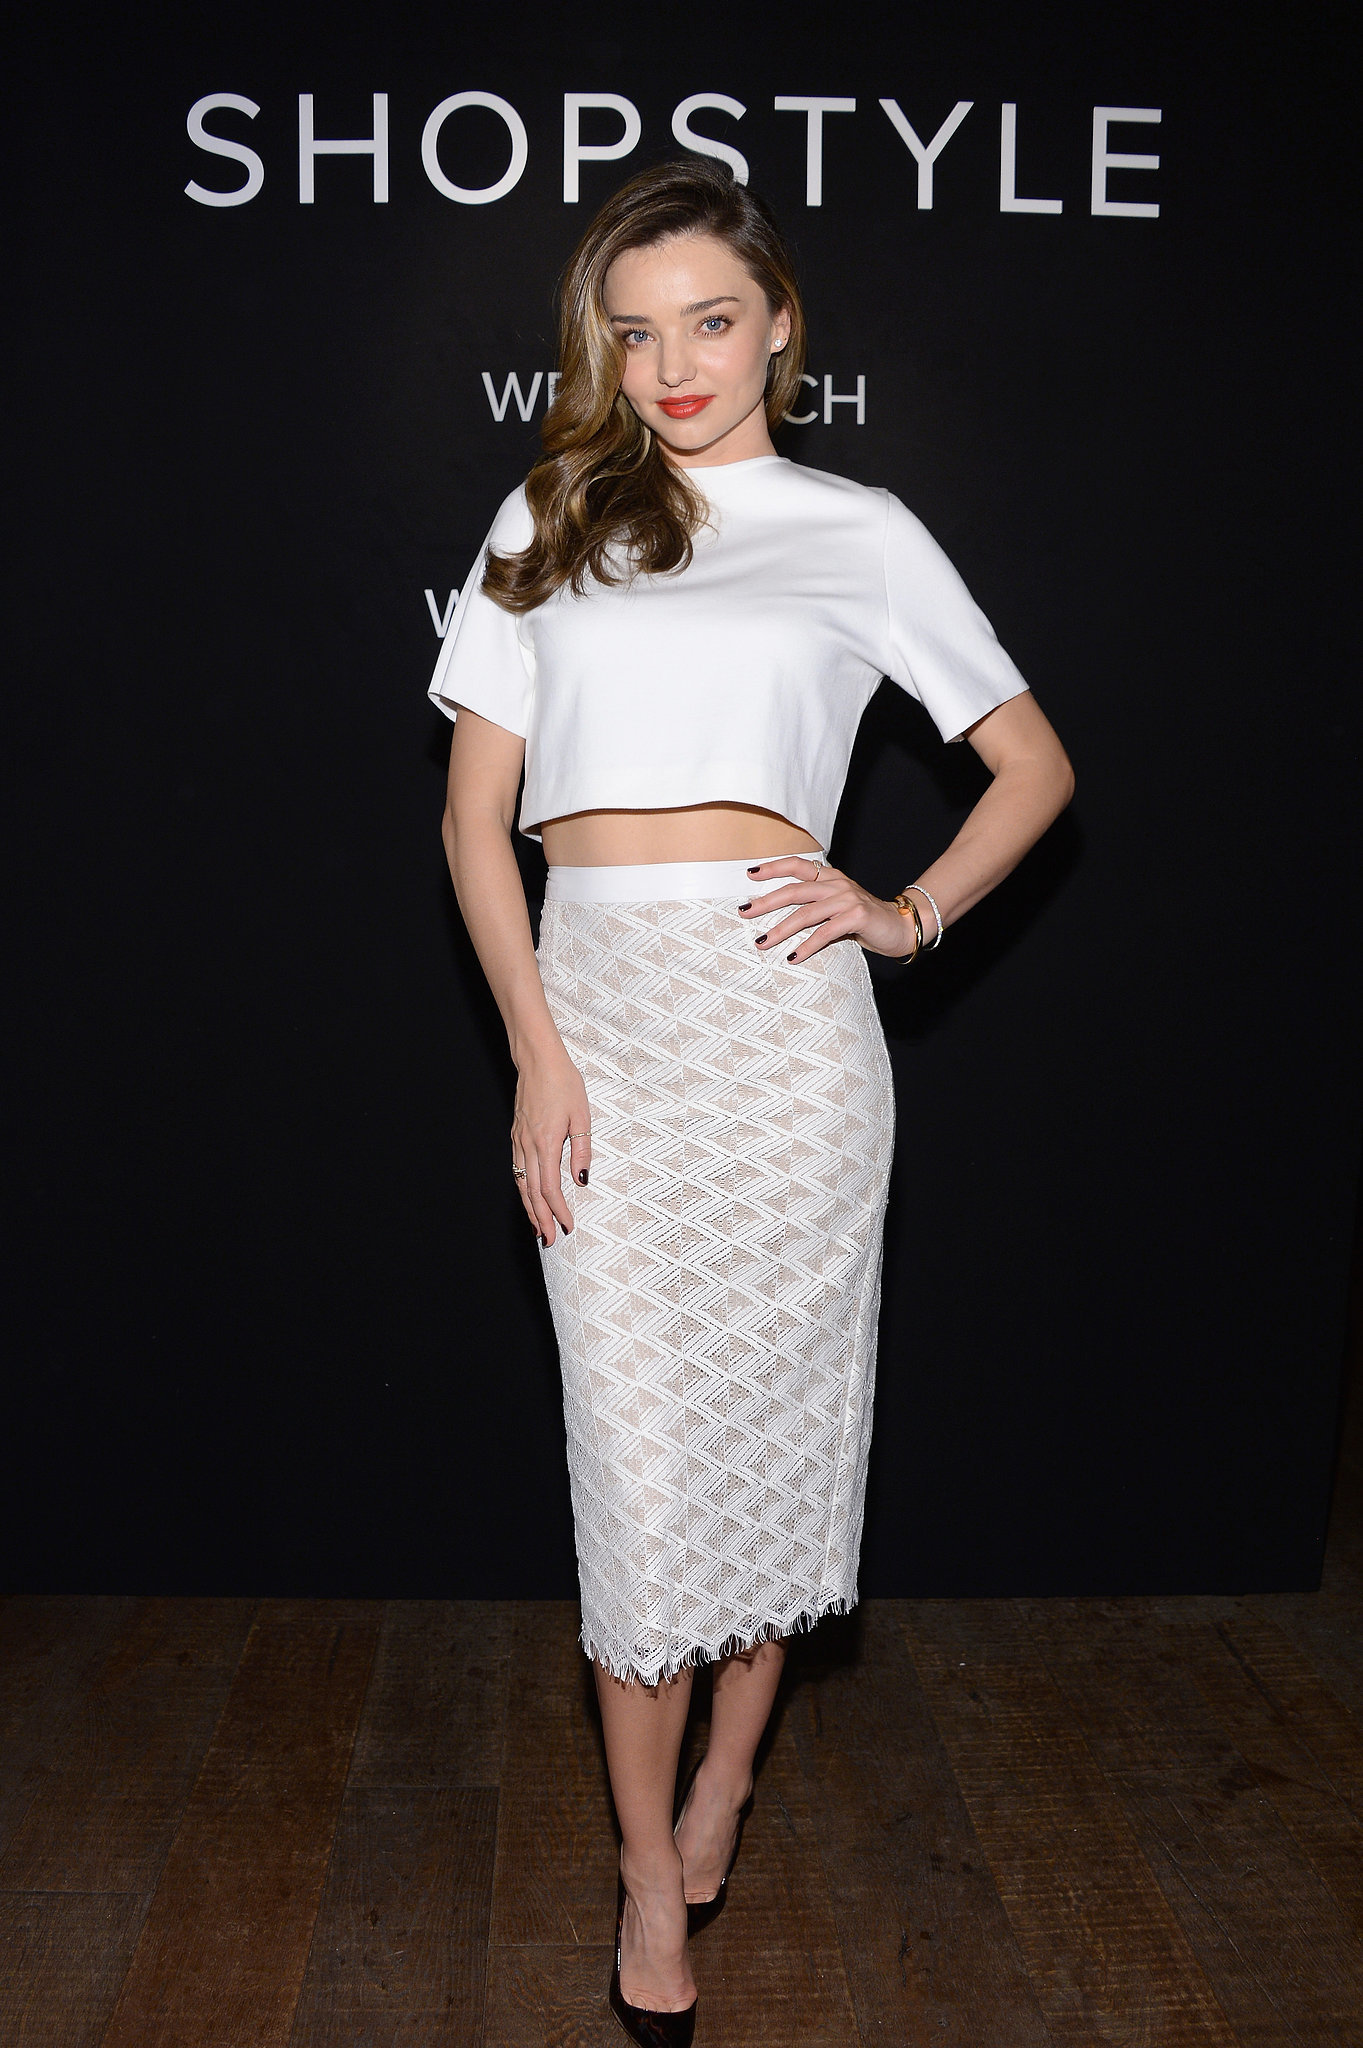 Miranda Kerr in Jenni Kayne at the launch of the new ShopStyle campaign.